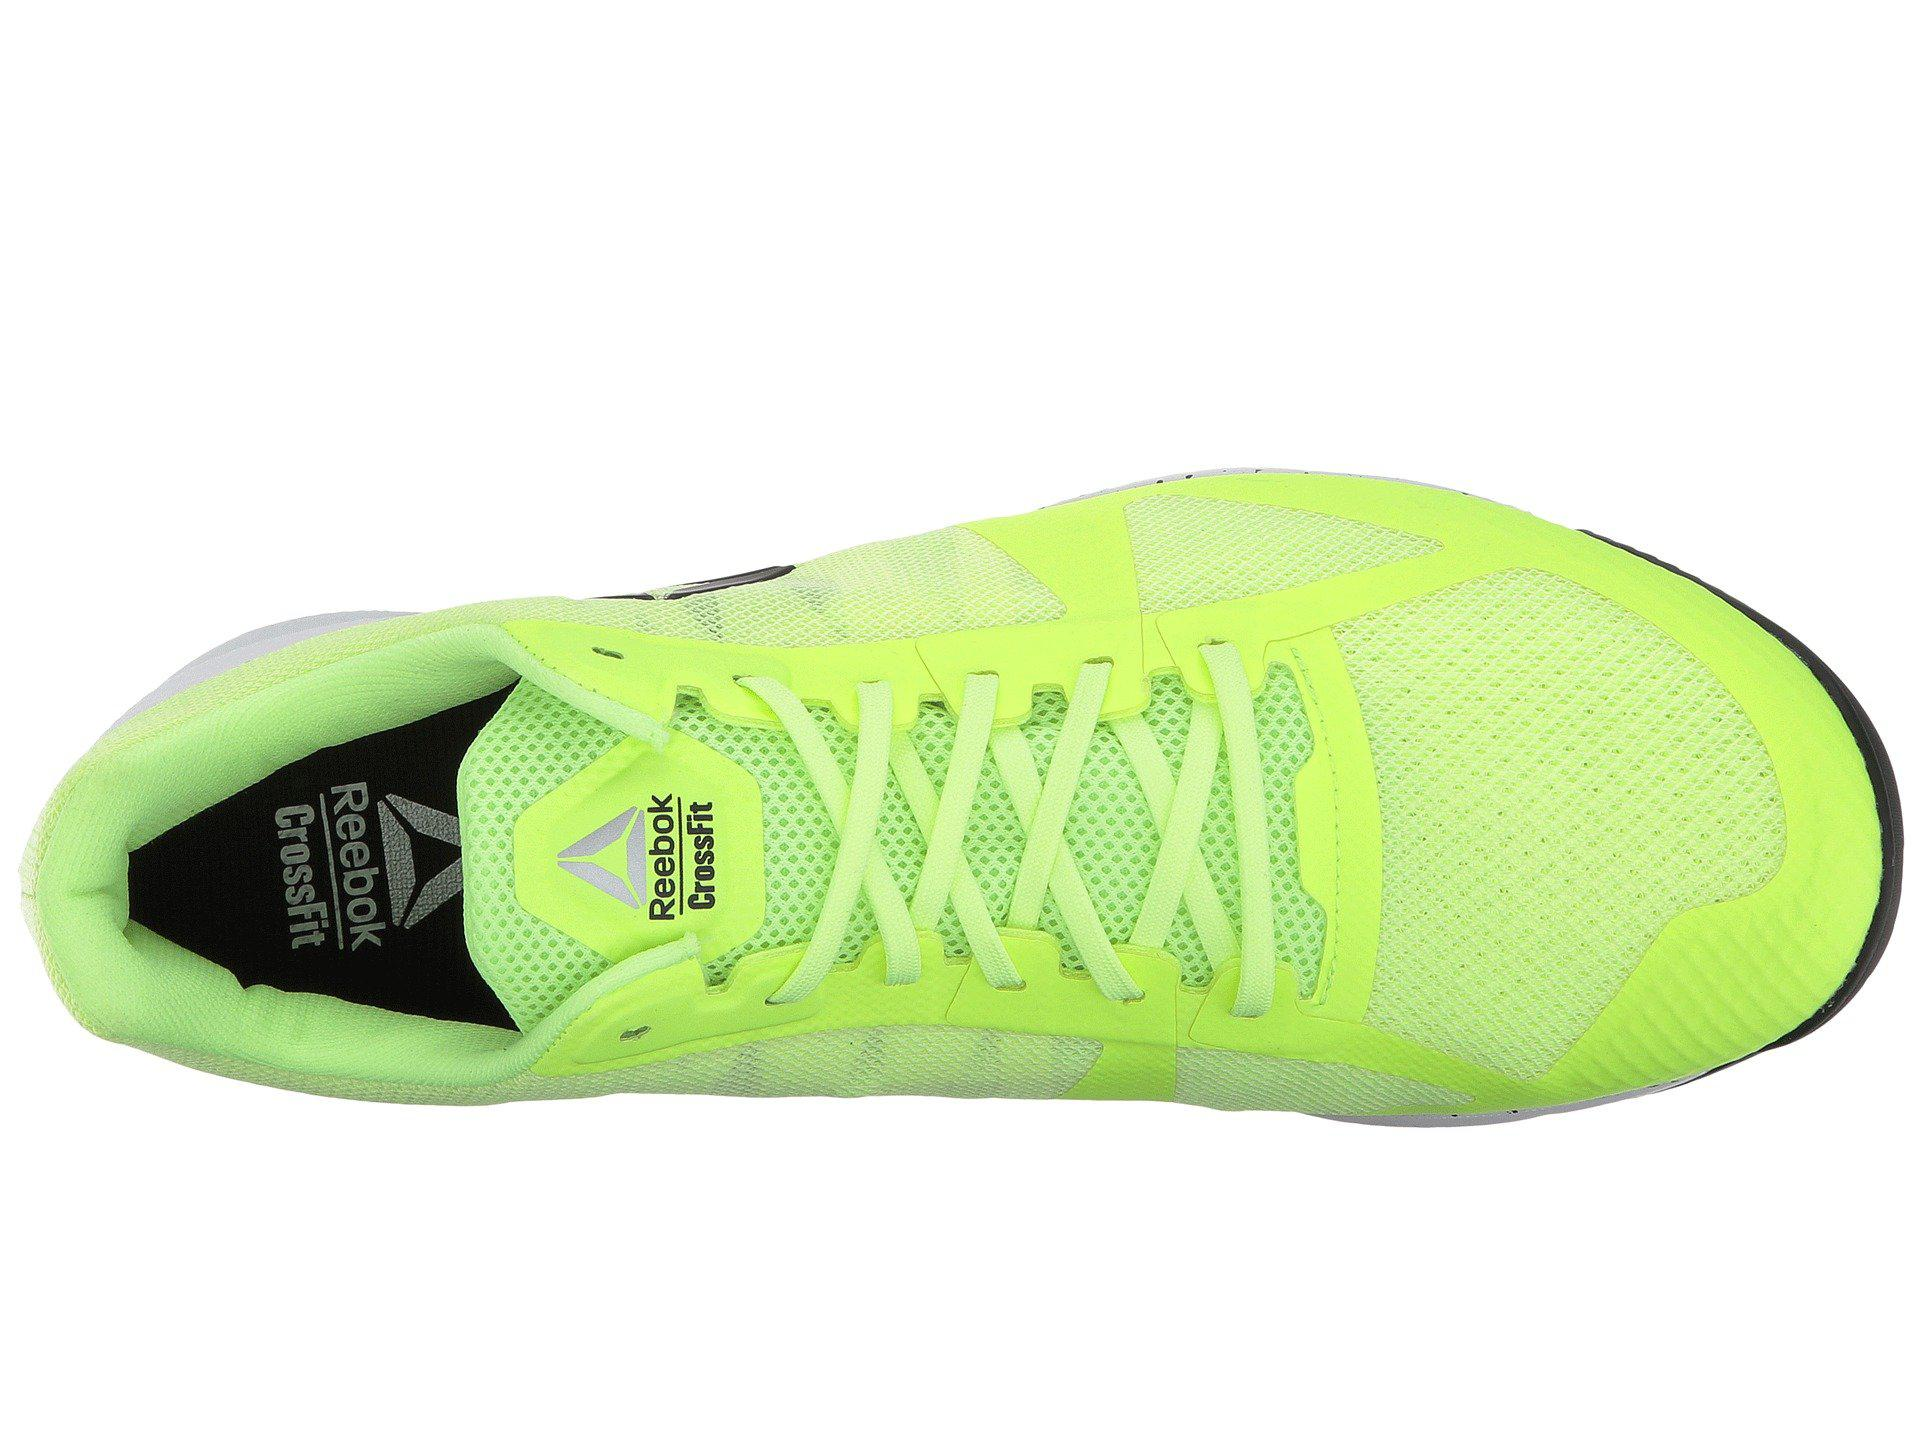 2f6e536ef5b5 Reebok - Green Crossfit® Speed Tr 2.0 for Men - Lyst. View fullscreen